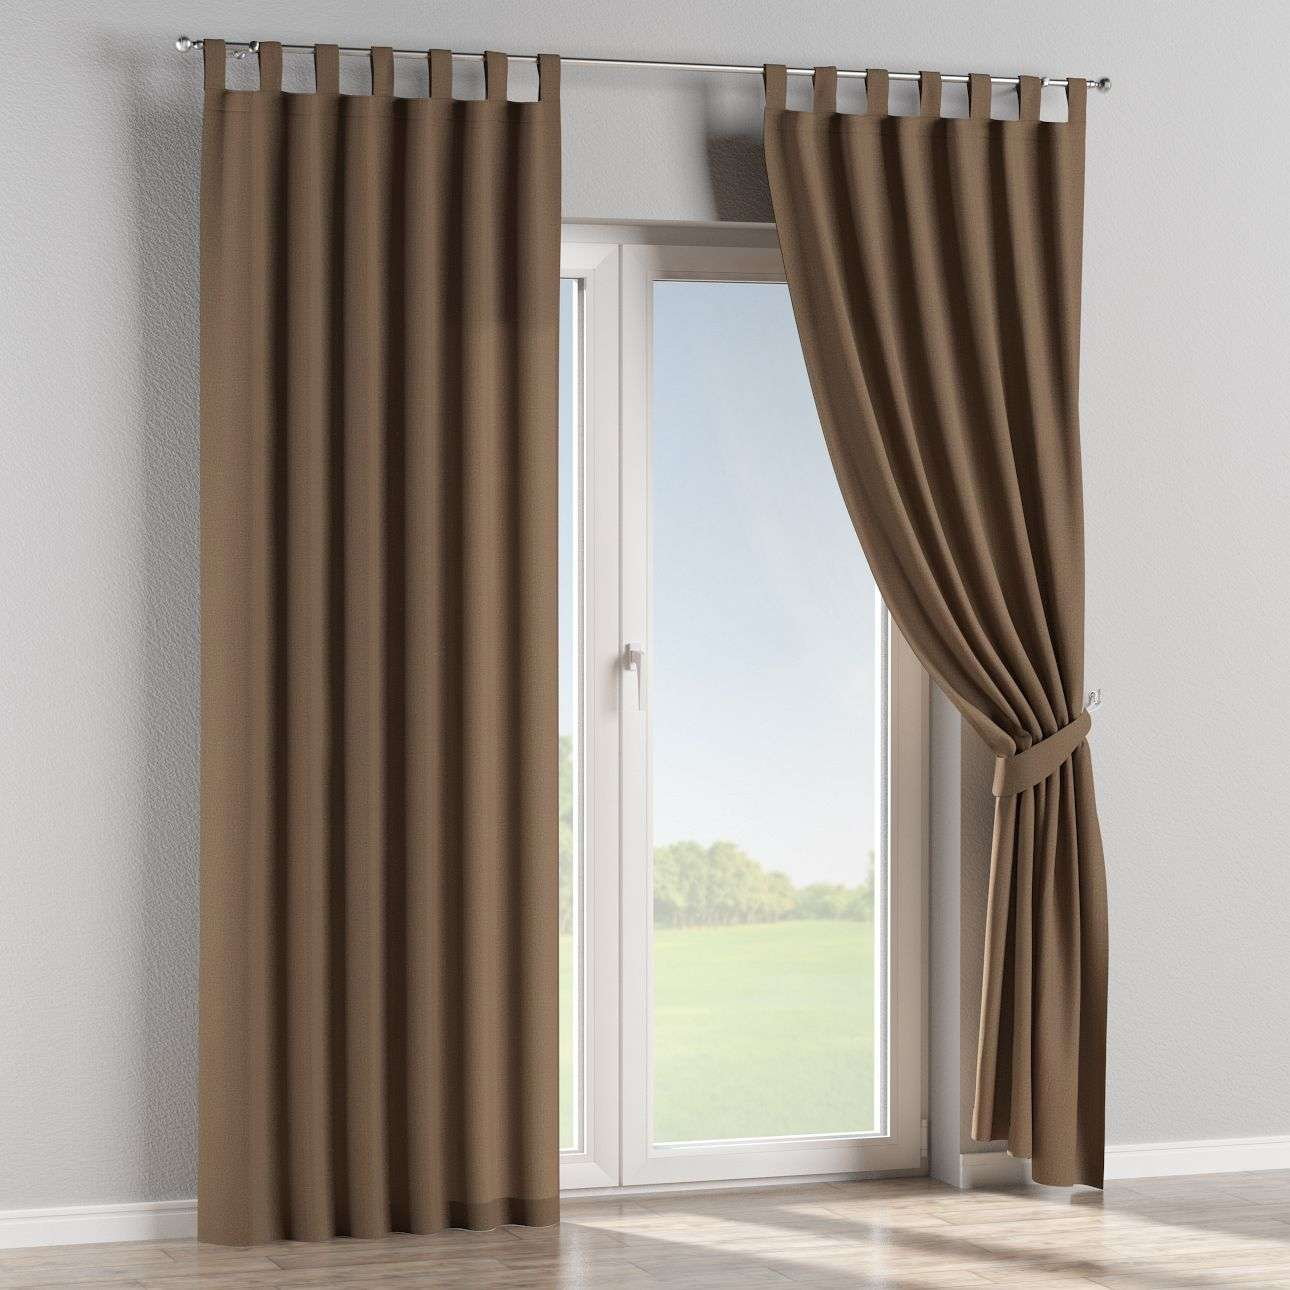 Tab top curtains in collection Edinburgh, fabric: 115-85